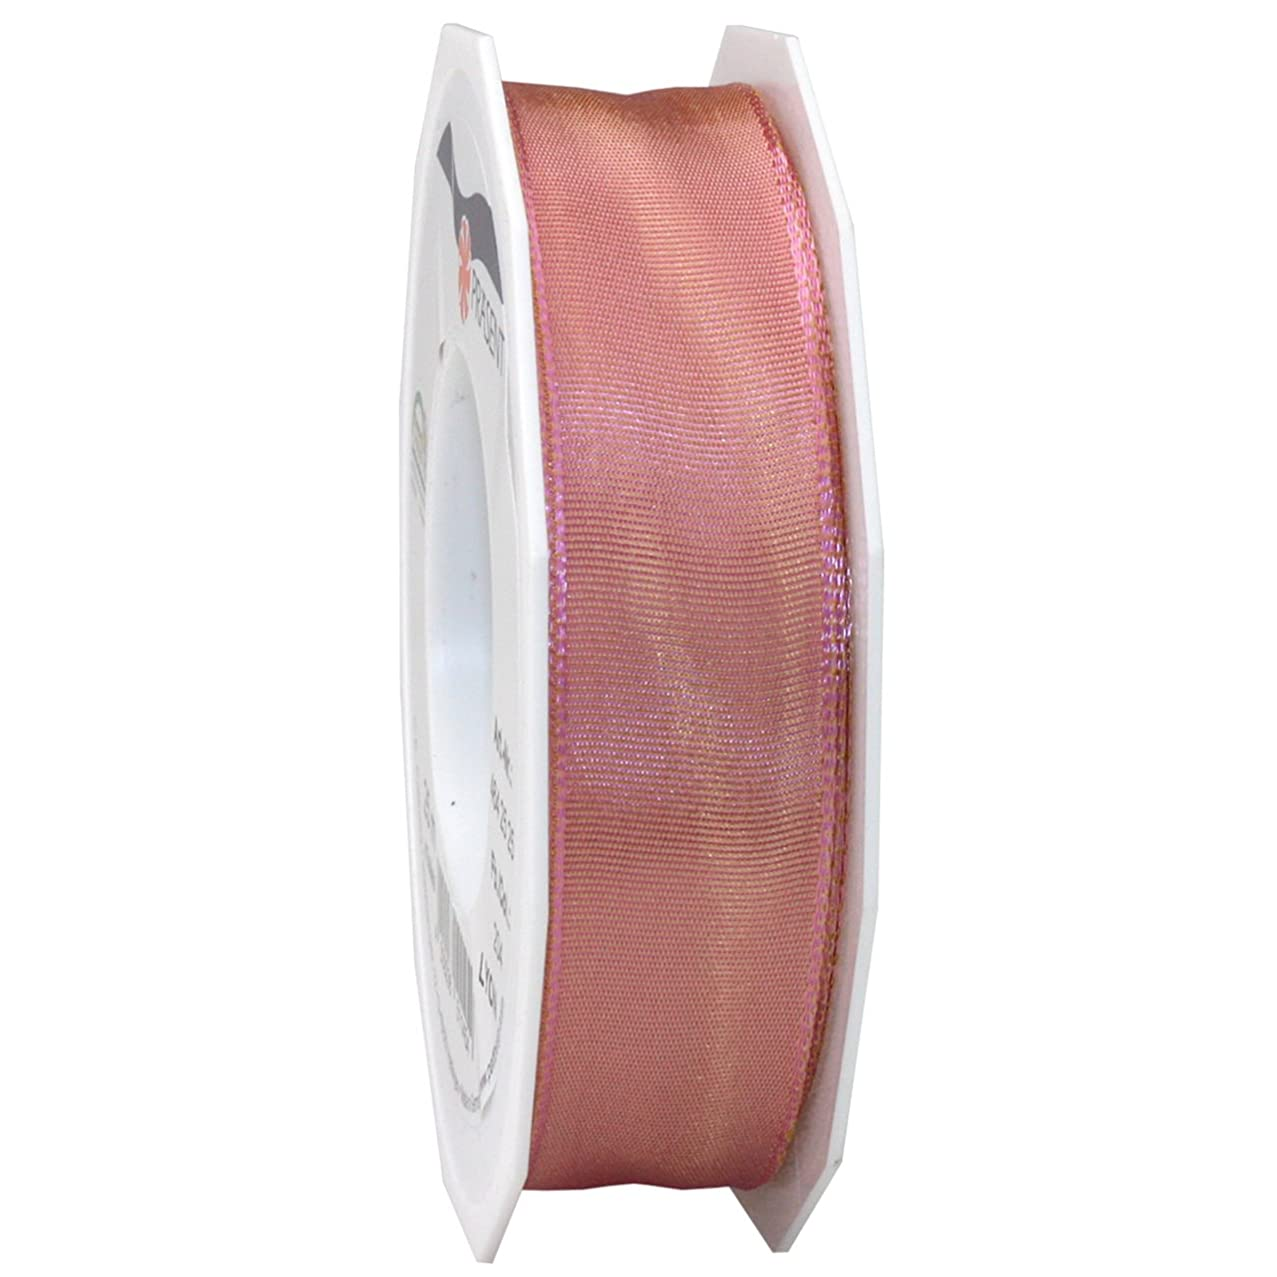 Morex Ribbon French Wired Lyon Ribbon, 1-Inch by 27-Yard Spool, Mauve